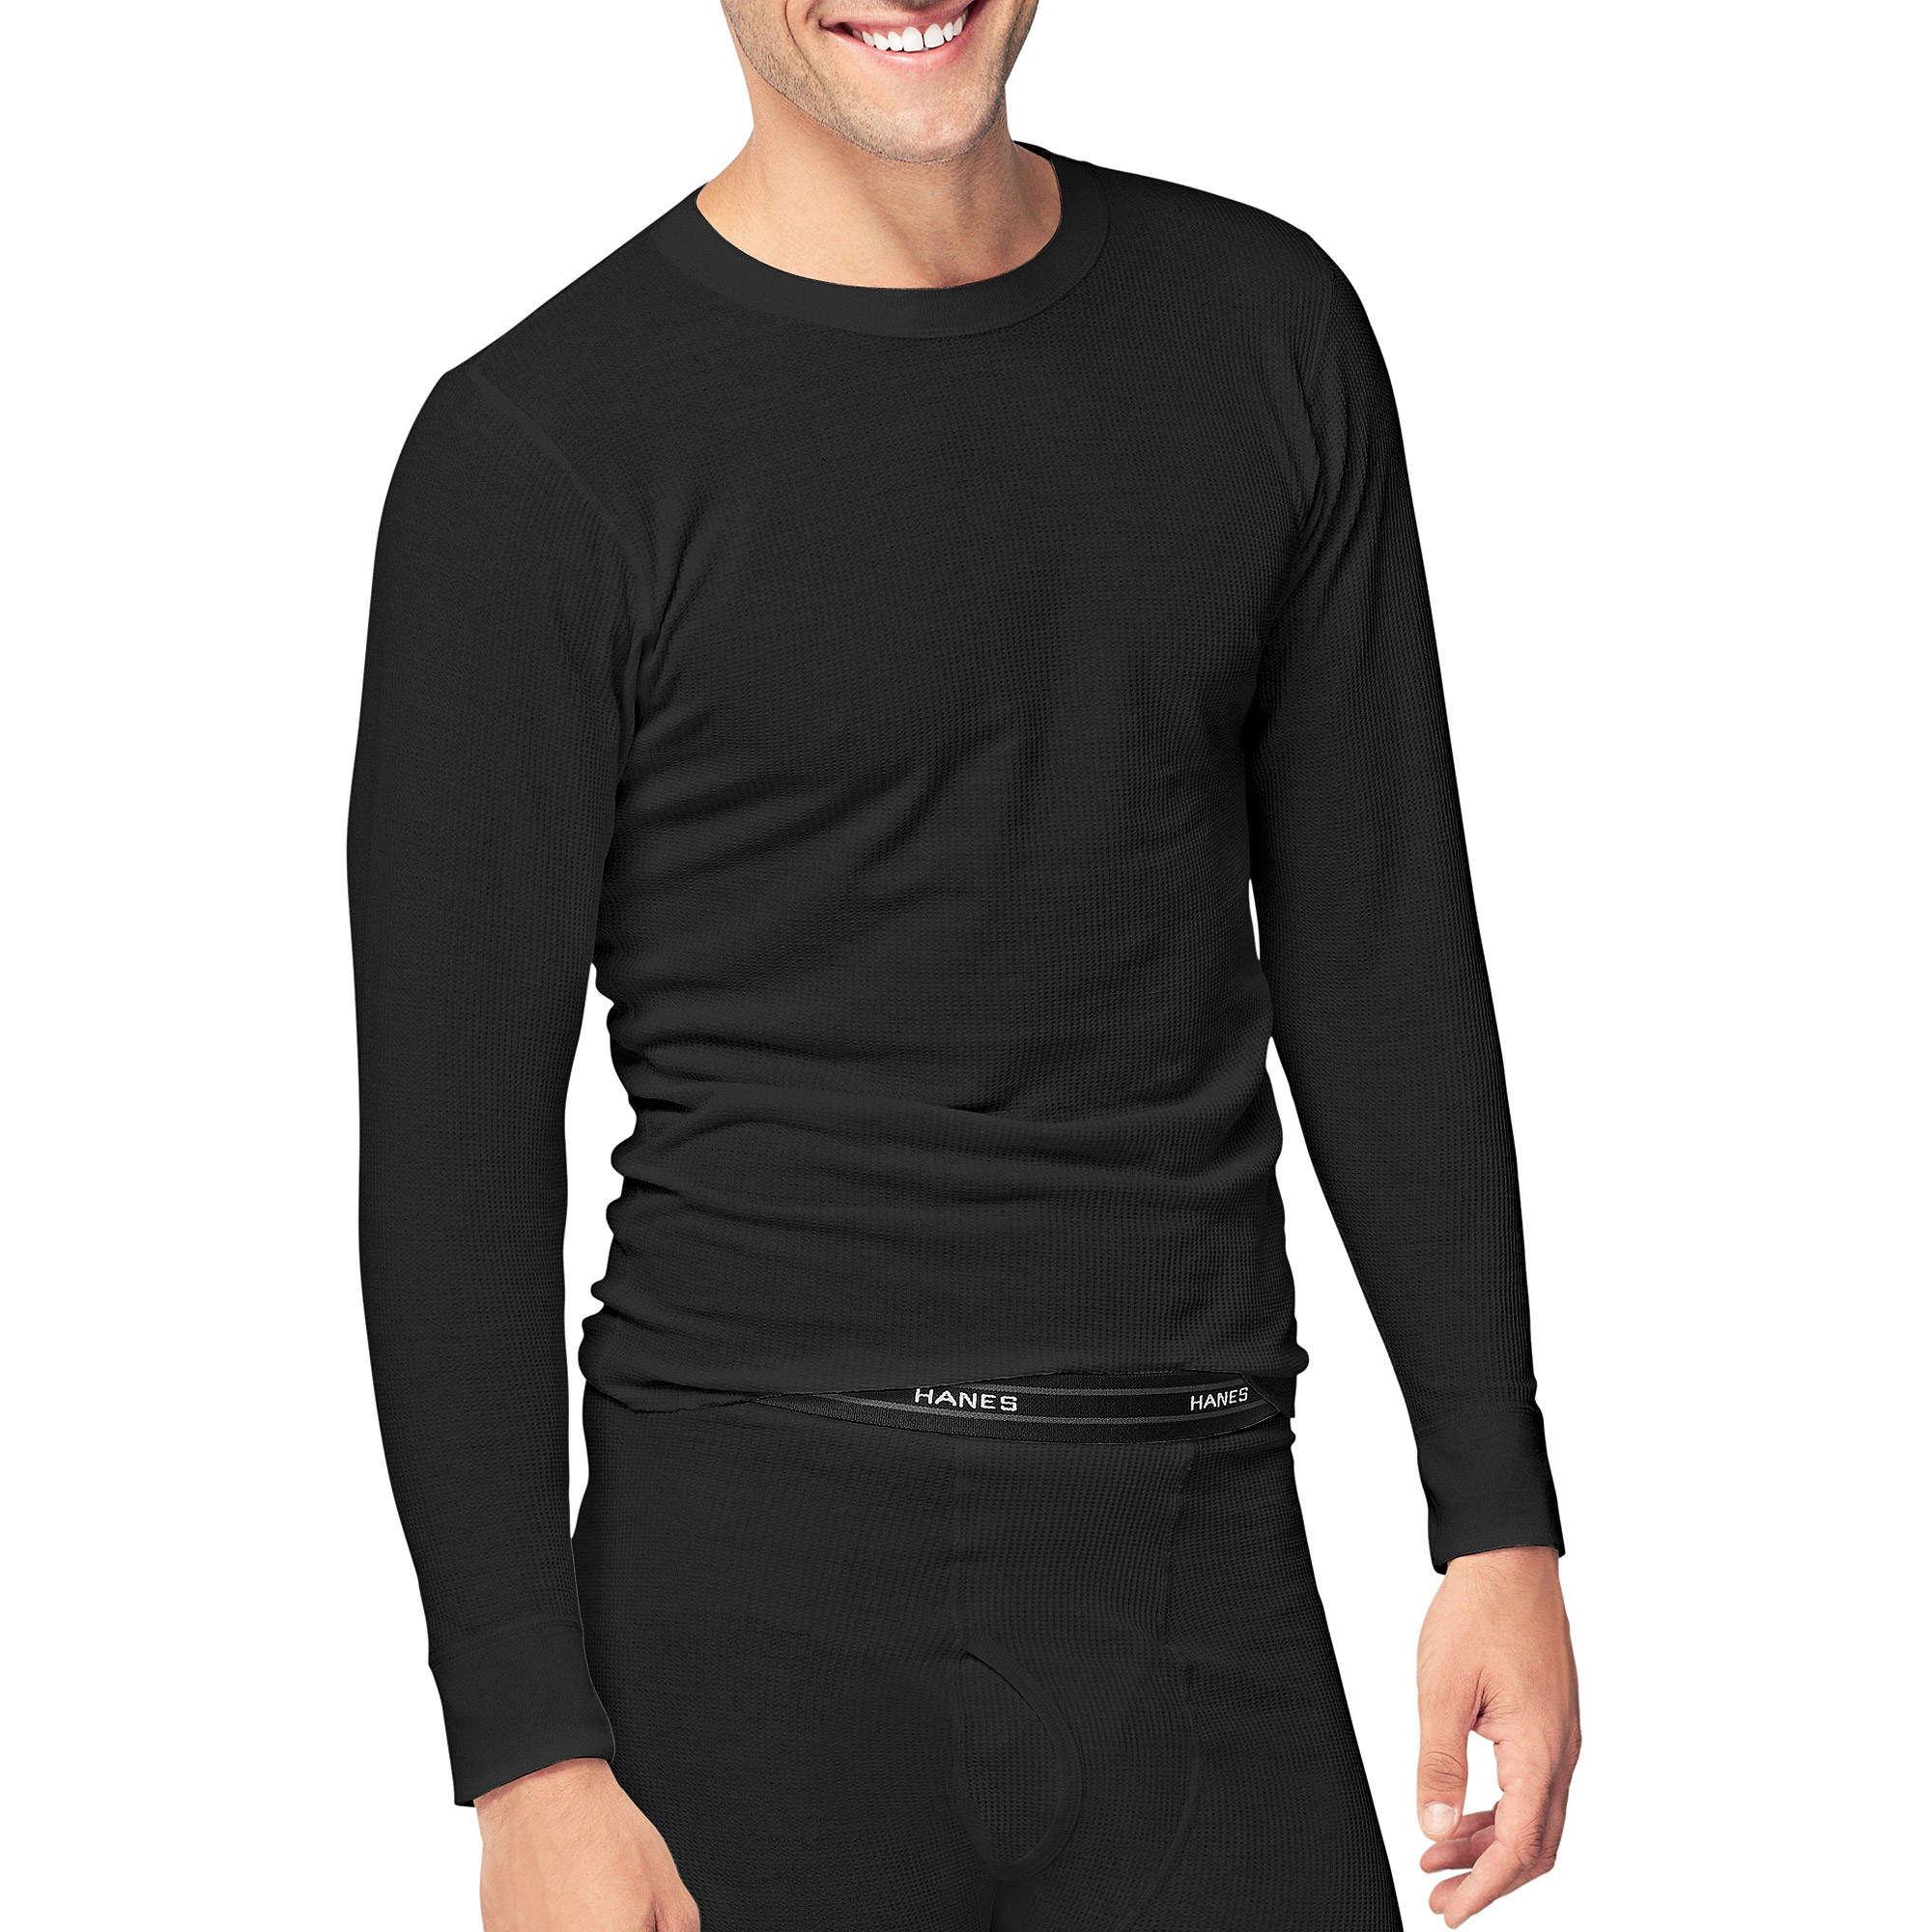 Big Men's Beefy Thermal Underwear Crew